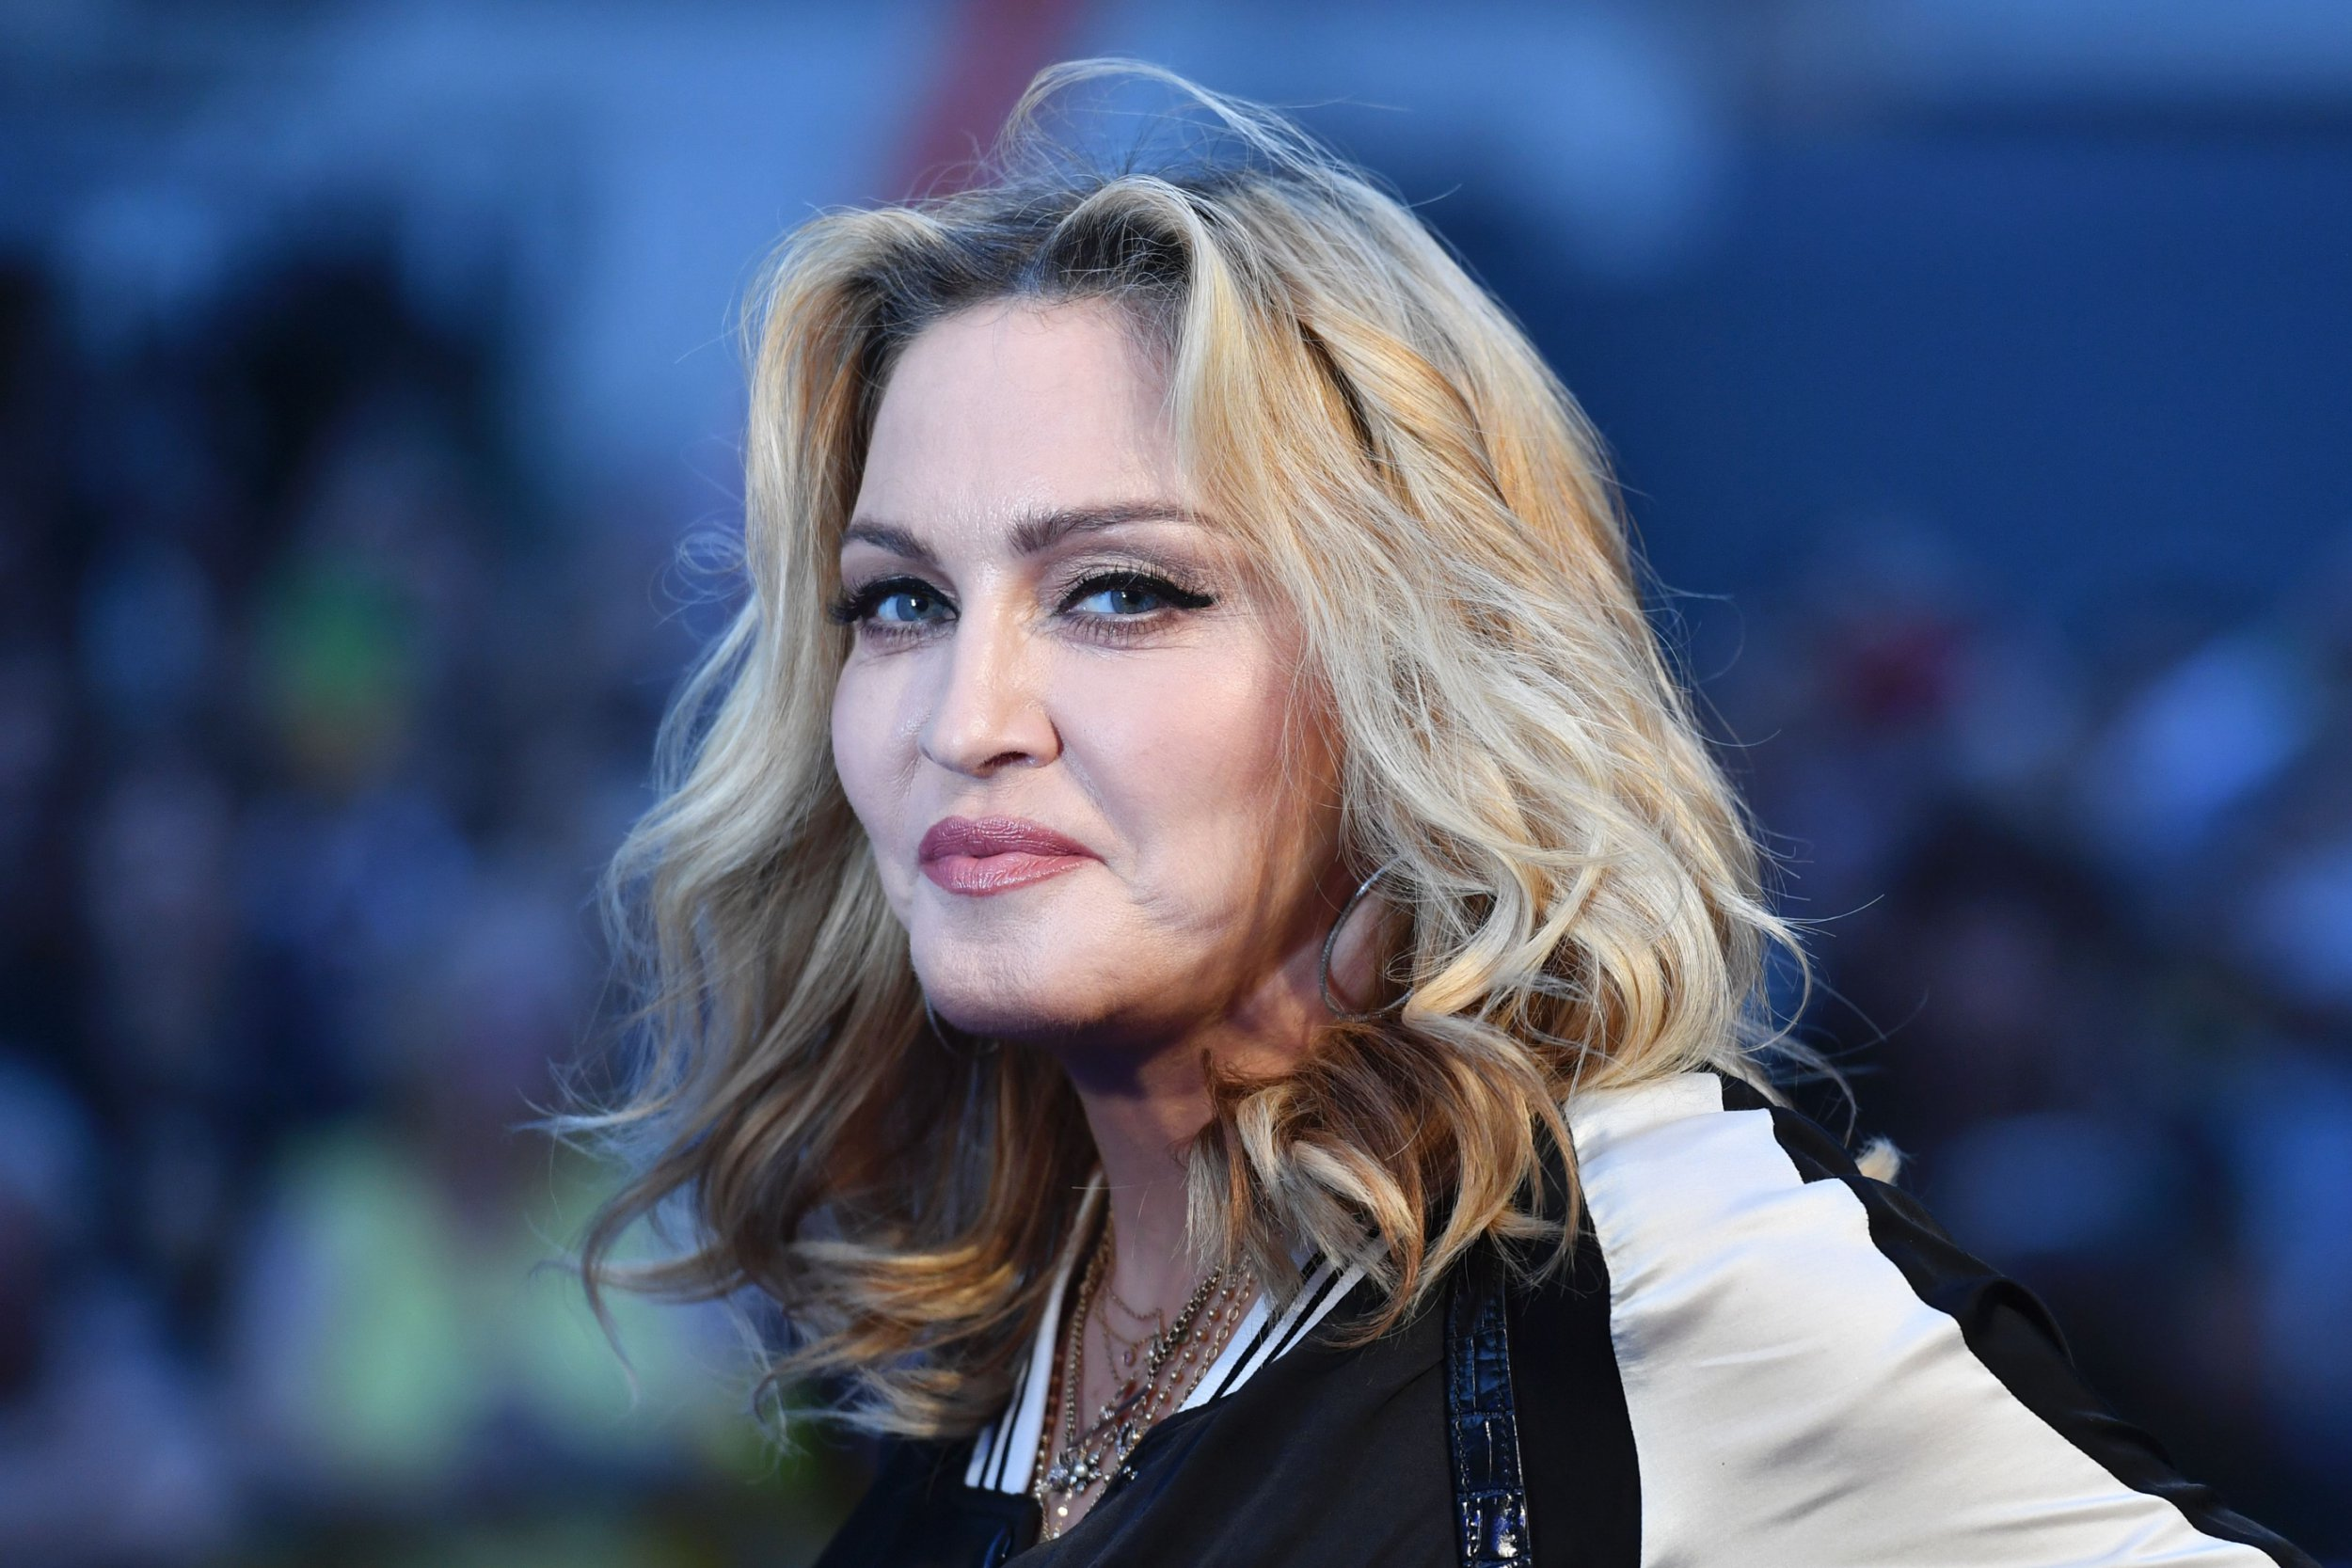 Madonna confirms she has moved to Lisbon after buying £7million home